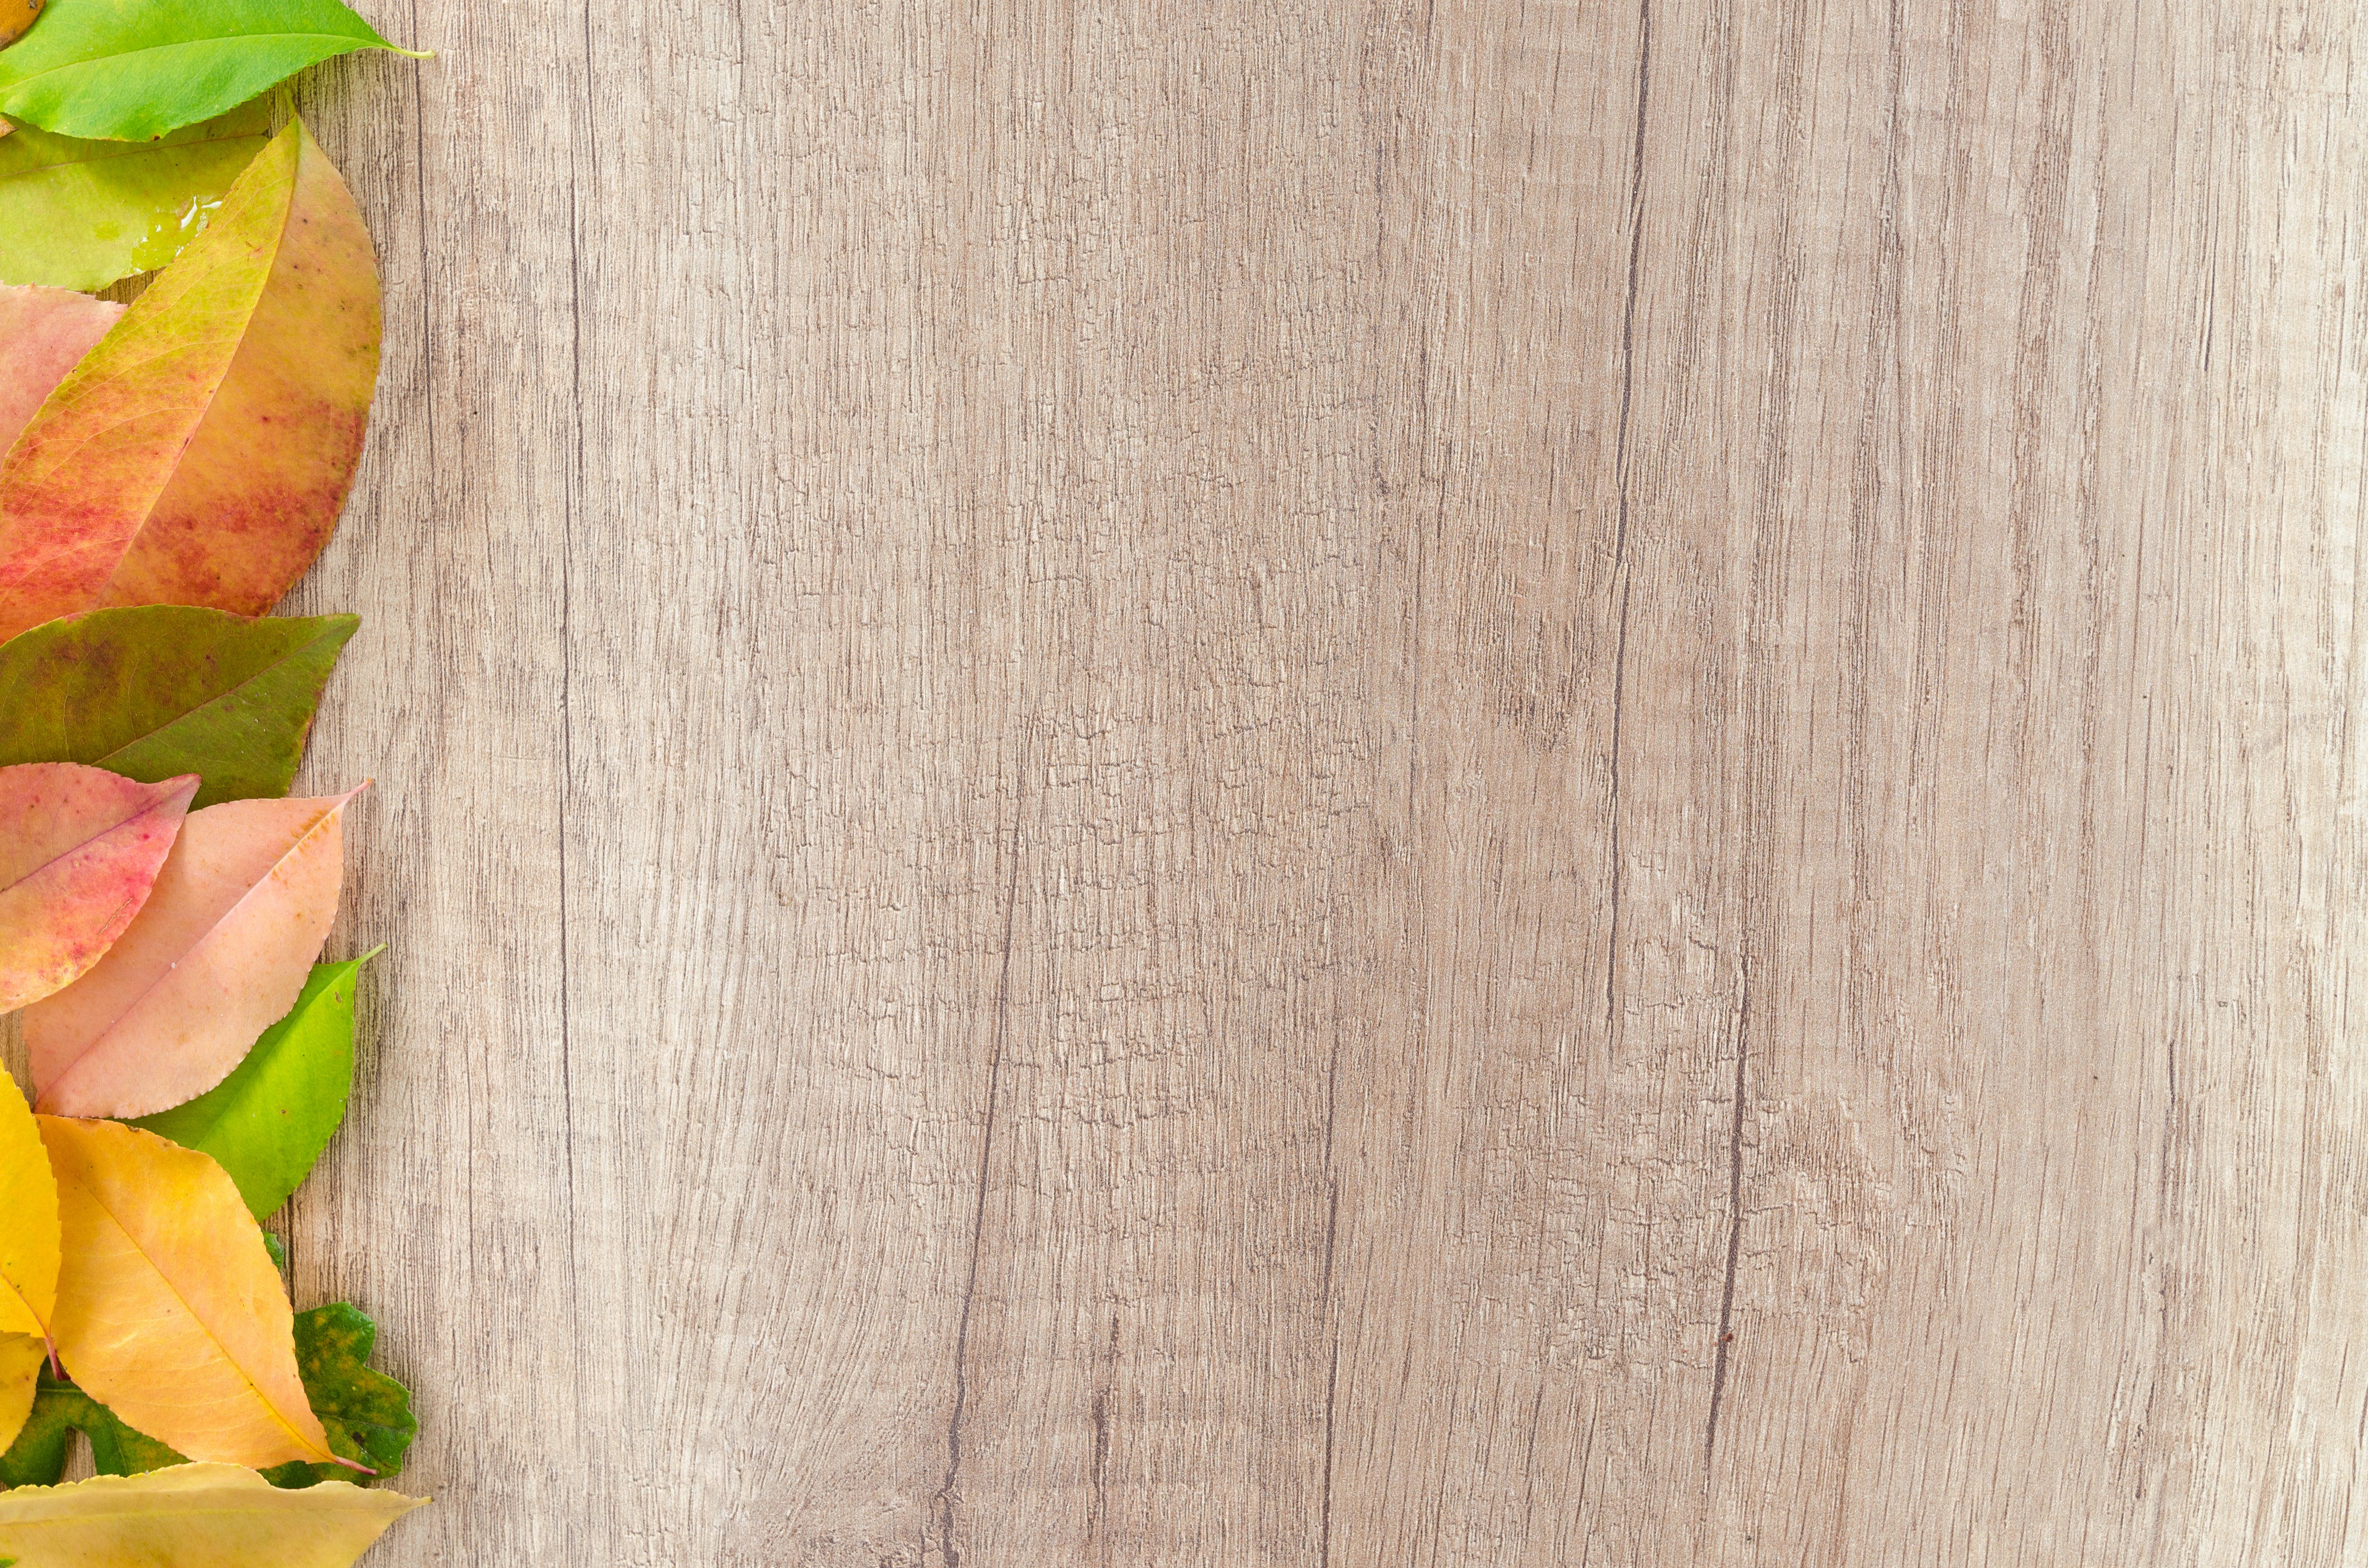 Free stock photo of wood, nature, red, dry